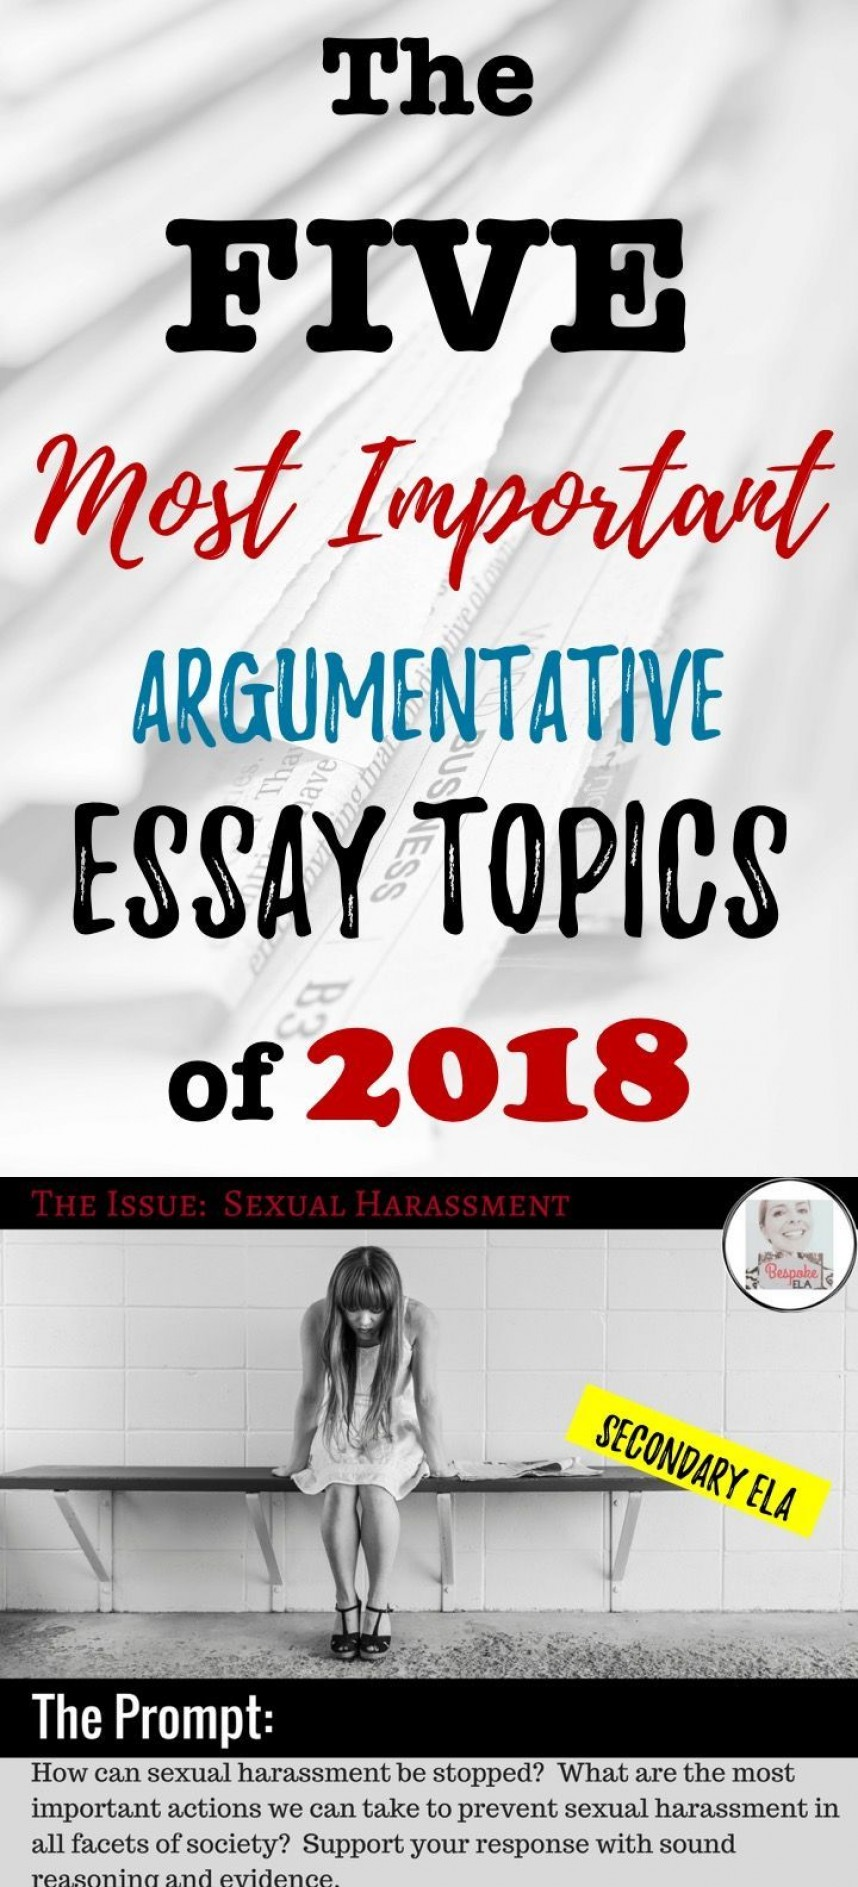 003 Research Paper Argumentative Essay Topics Remarkable 2018 Easy Middle School High